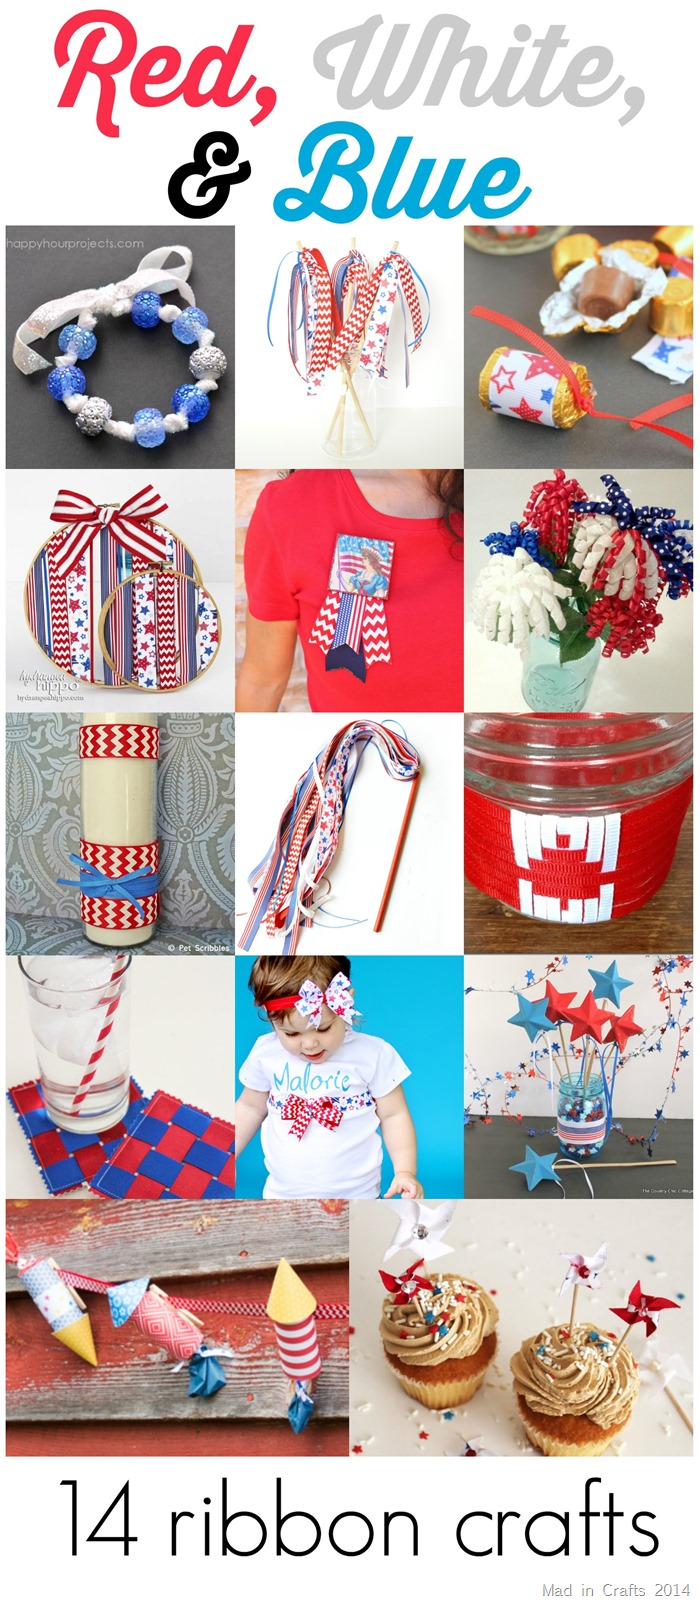 14 Red, White and Blue Ribbon Crafts